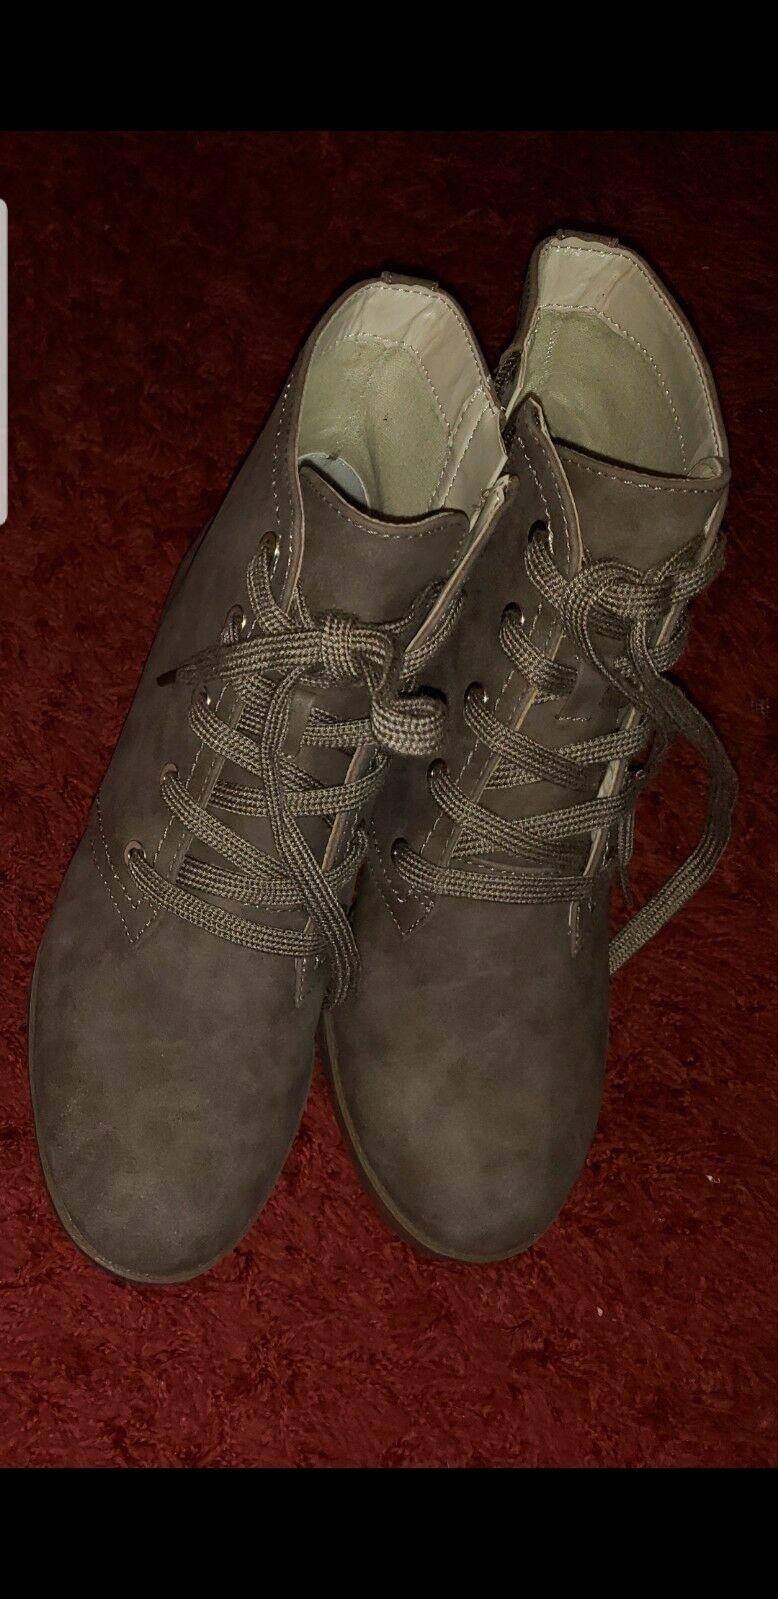 Indigo Rd. Abelly Med Brown Ankle Boots womens size 6